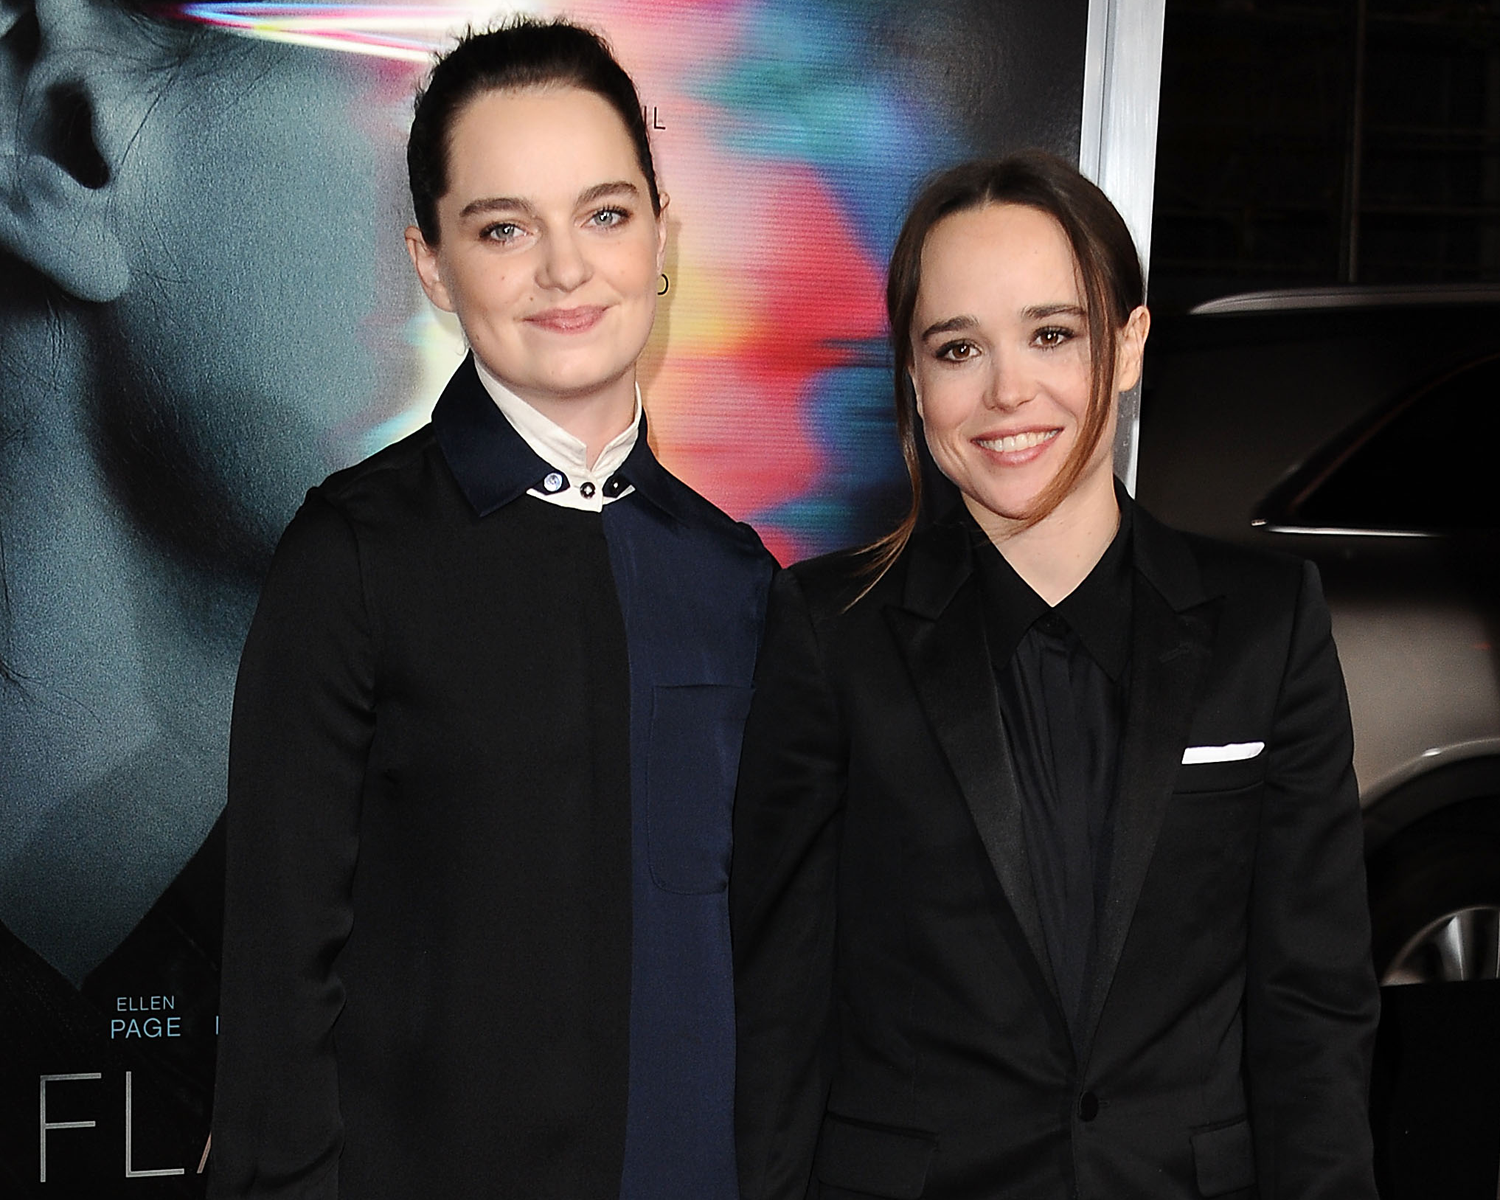 Ellen Page Marries Emma Portner See Her Adorable Announcement